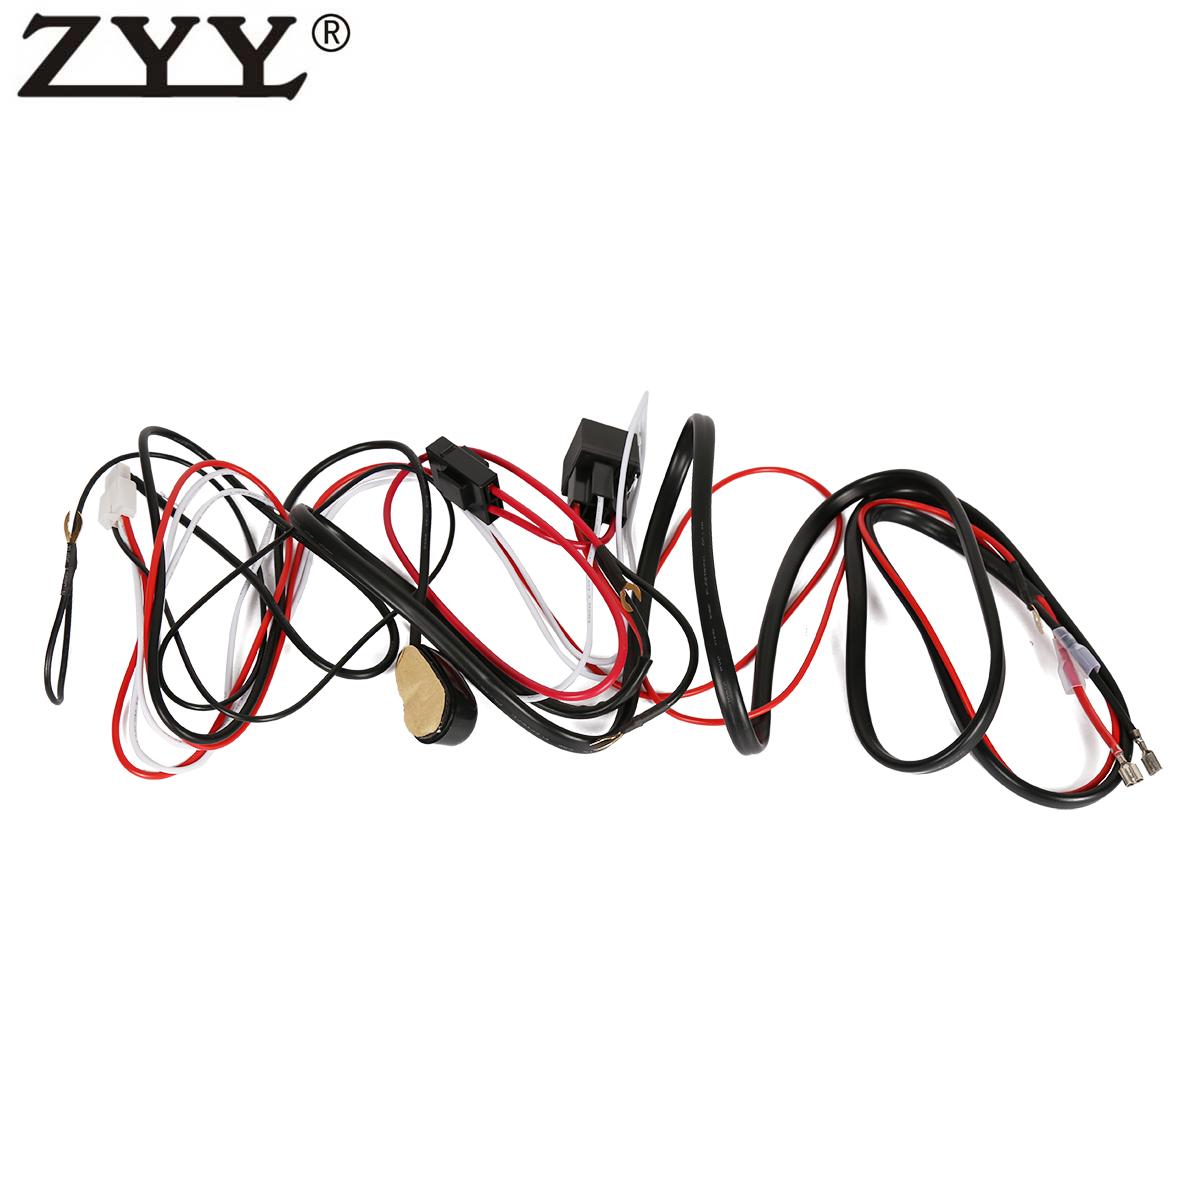 Wiring Harness Kit Line 40A 12V Switch Relay Harness For